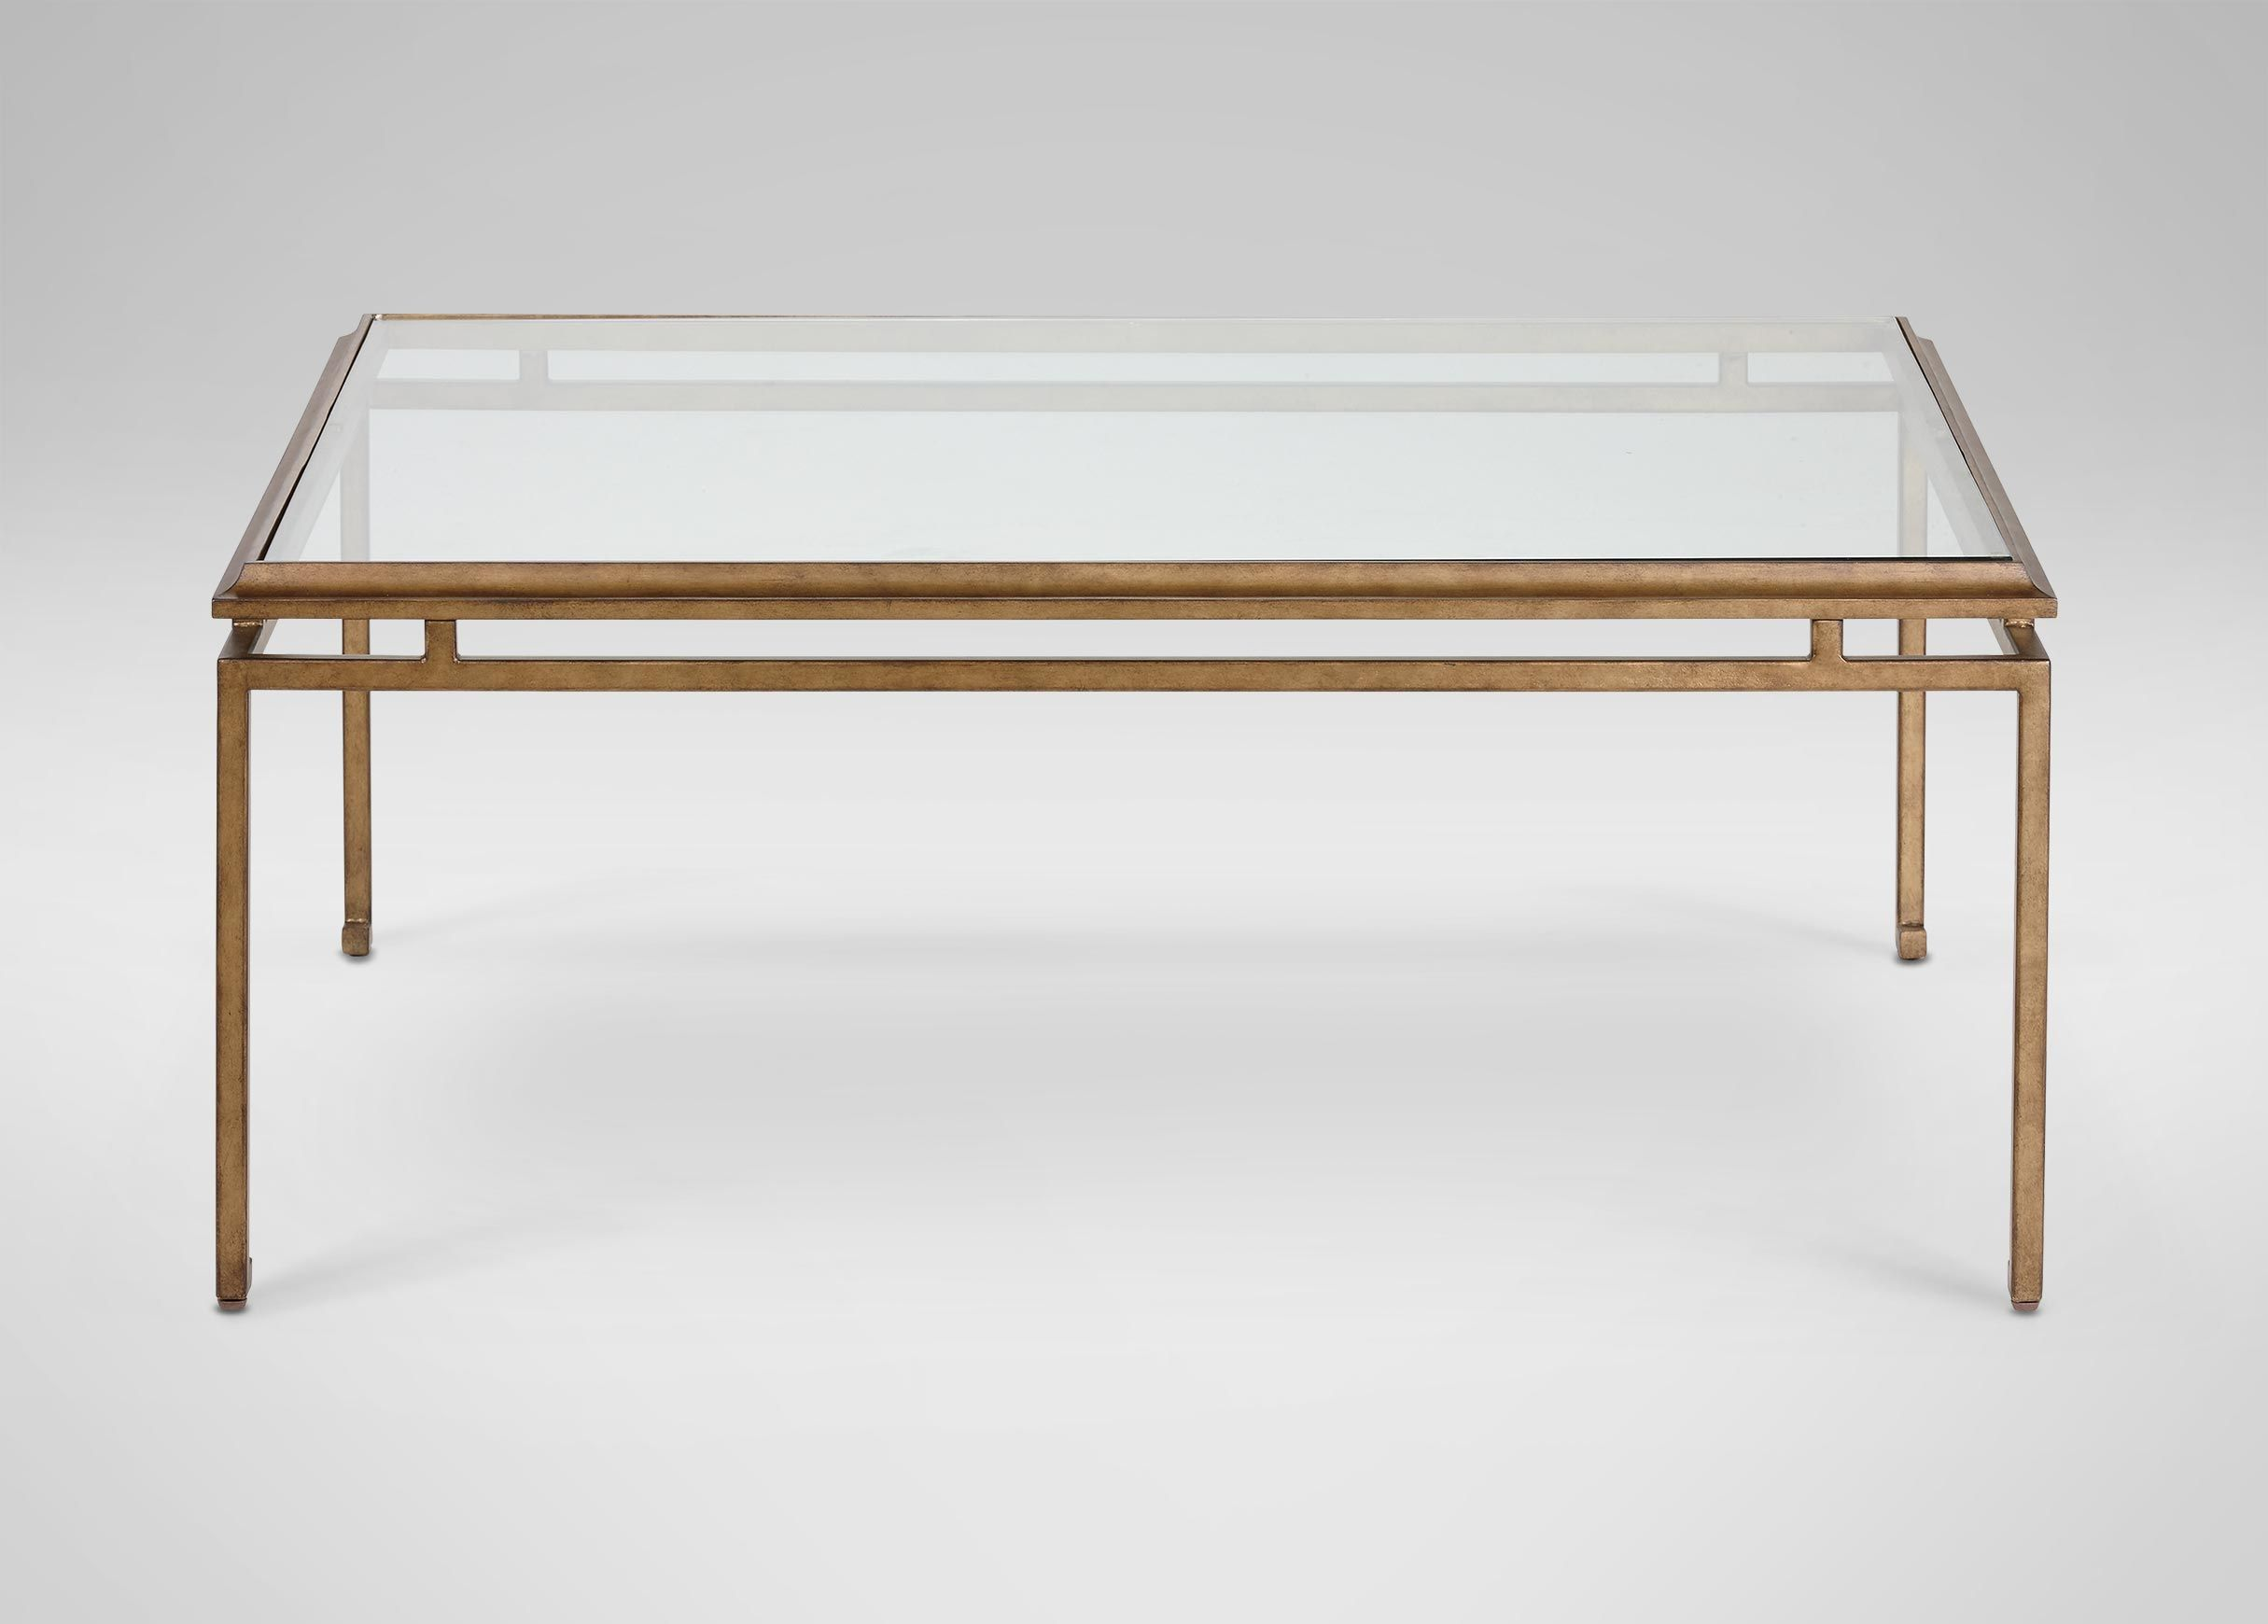 Beacon Square Coffee Table Table Coffee Table Canada Furniture